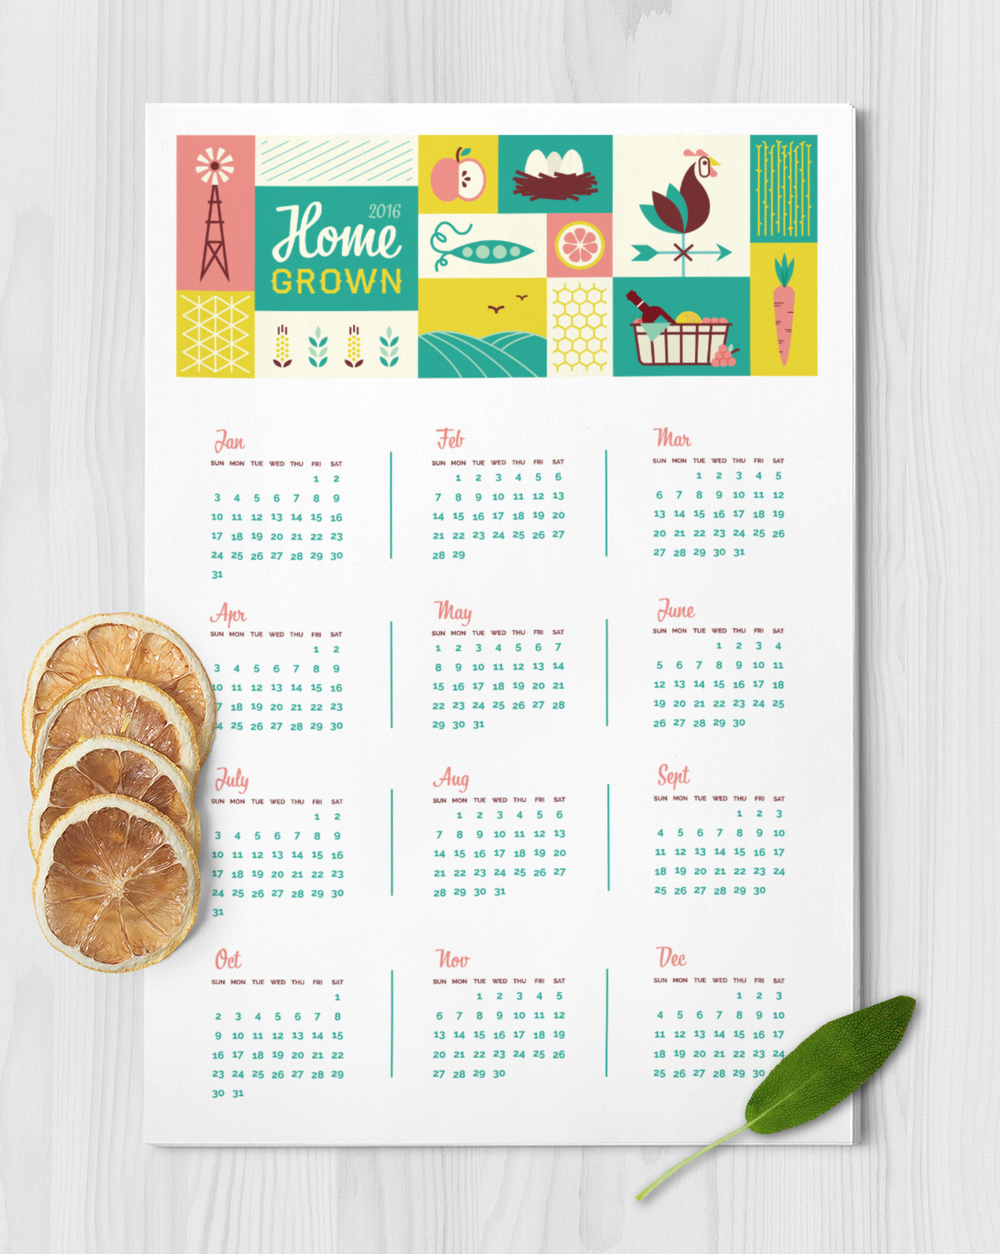 Home Grown 2016 calendar / personal project / 2015